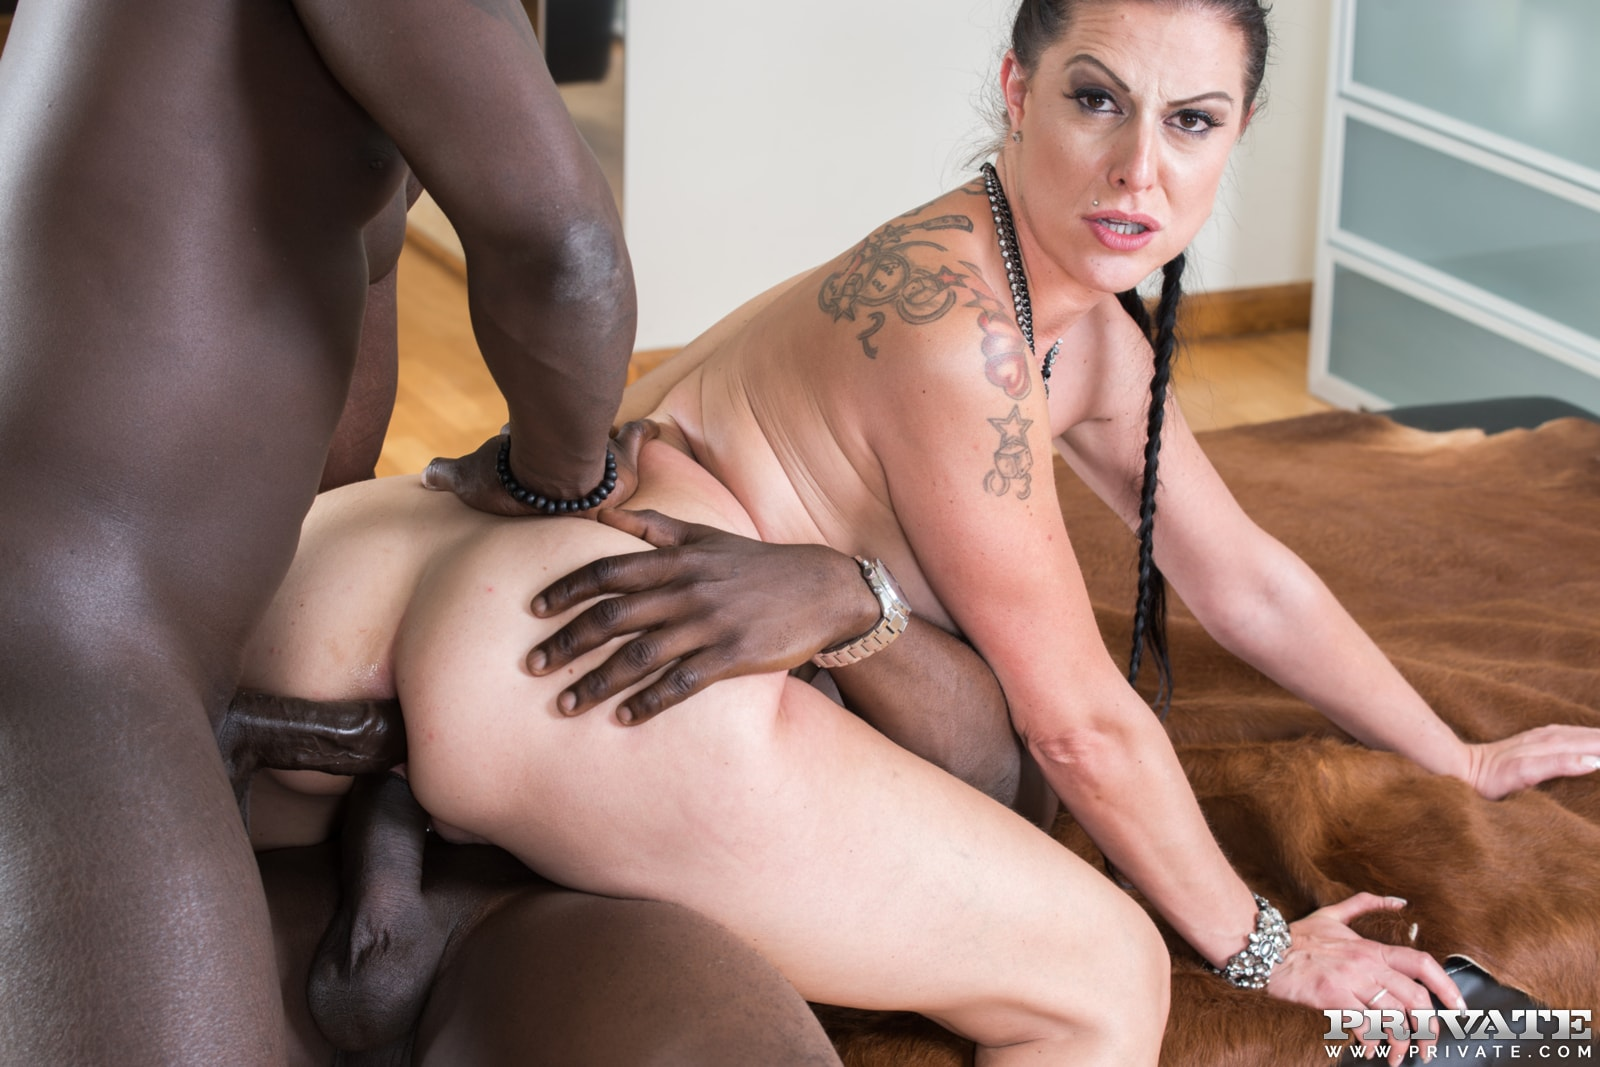 Interracial deep slamming with big titted milf alyssa lynn 7